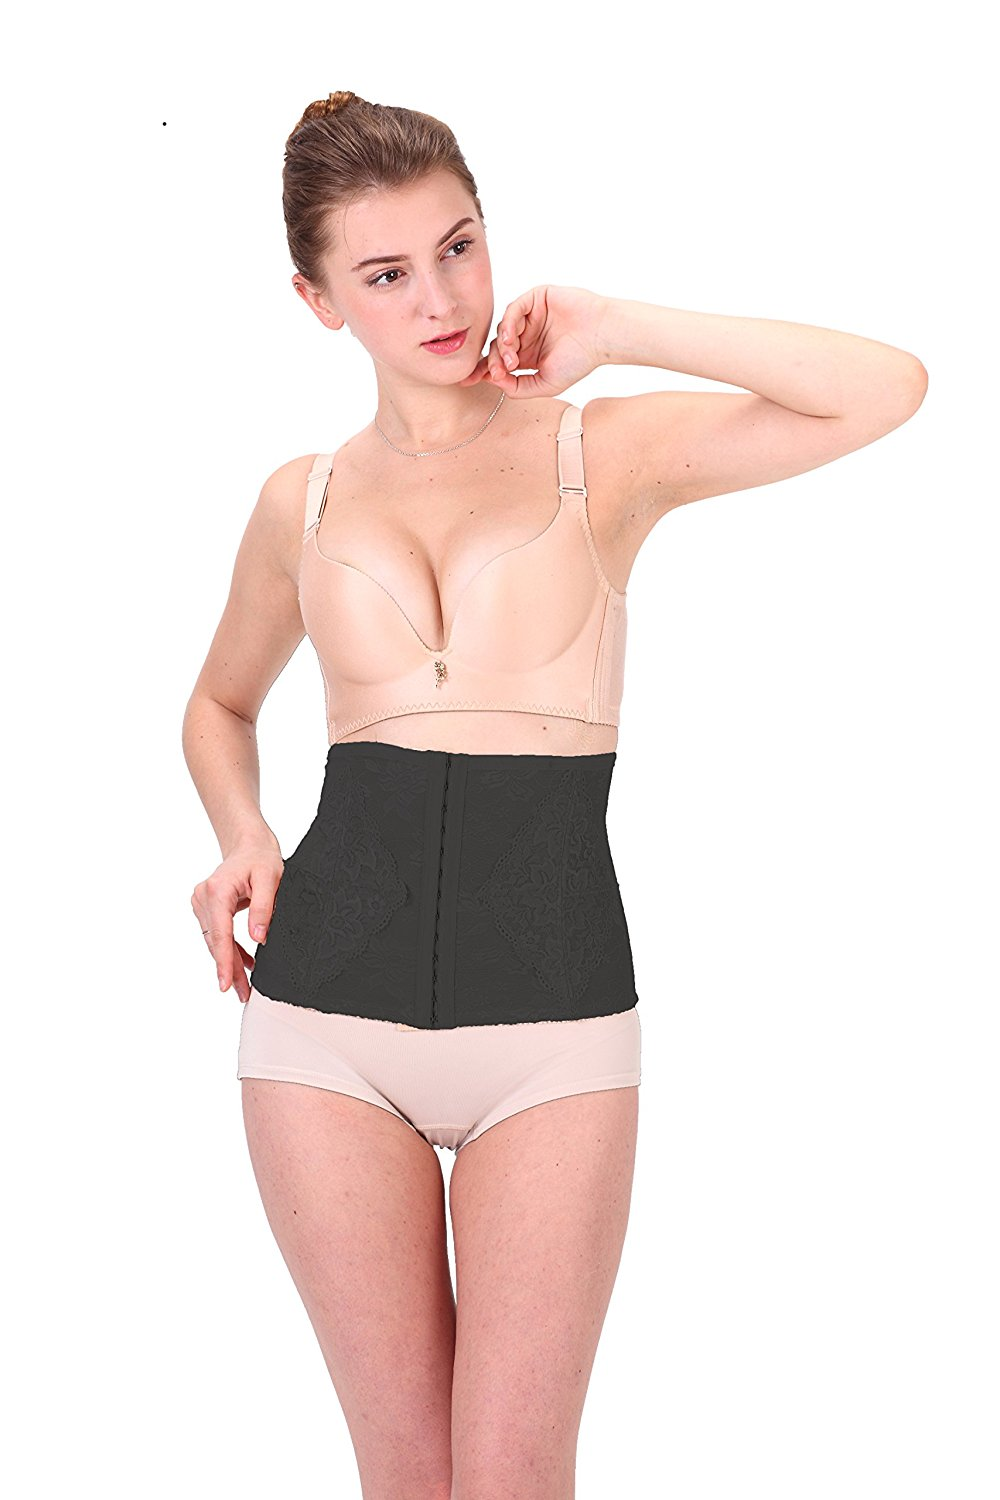 1bd3bea3f3 Get Quotations · MoDDeals Woman s Waist Trainer Tummy Control Shapewear  Smoothing Cincher Sexy Corset Girdle Wear Your Own Bra